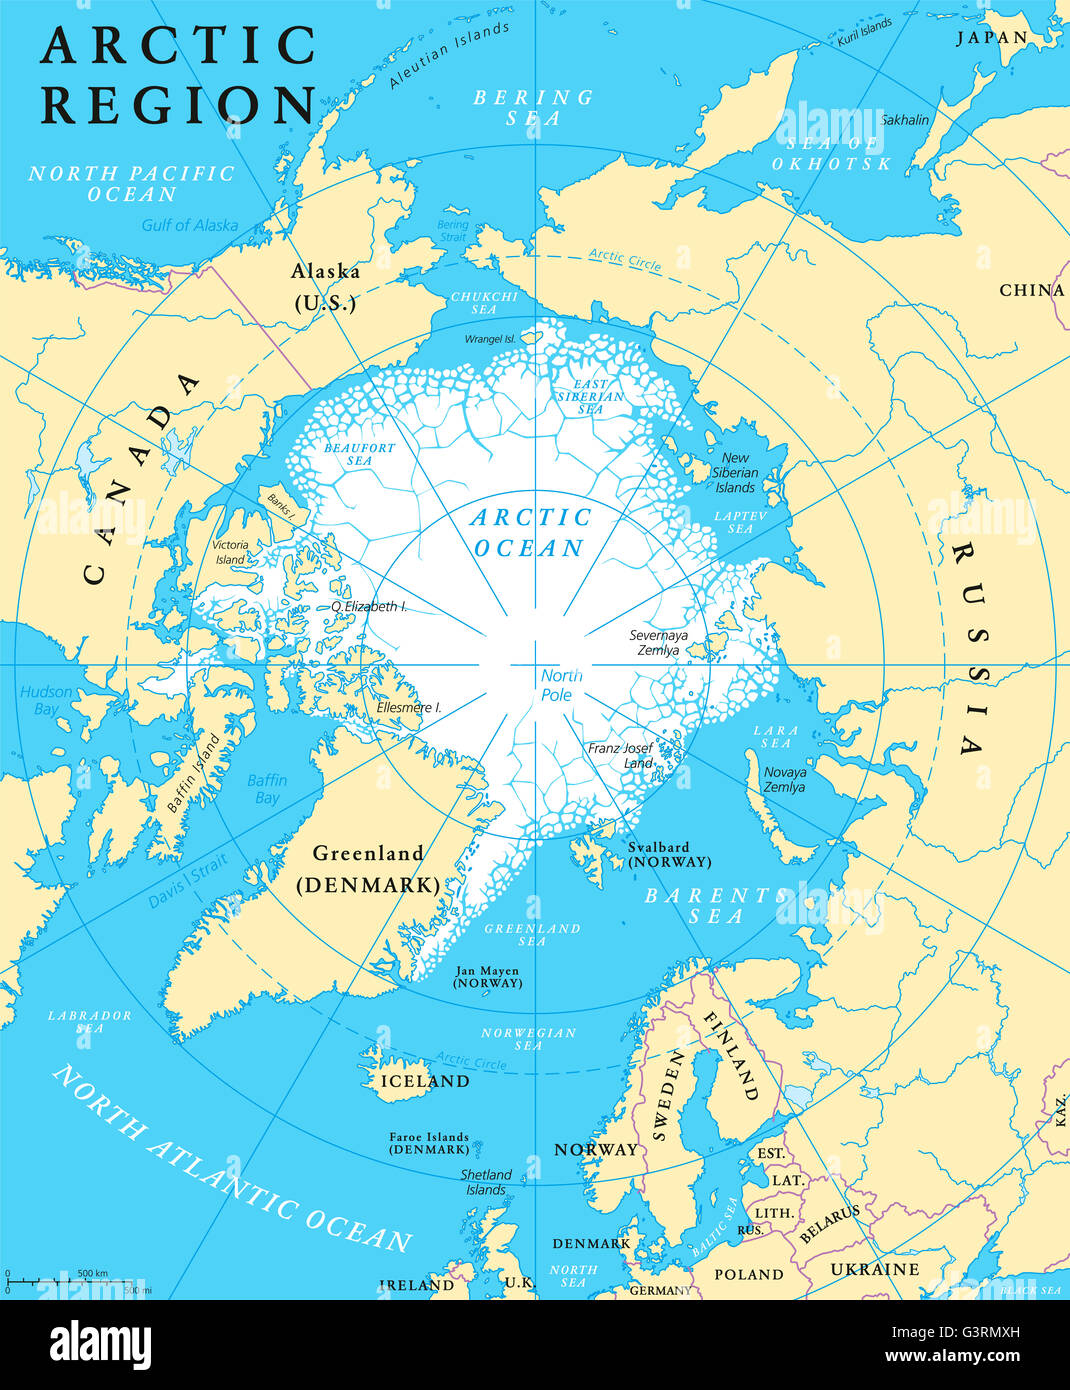 arctic region map with countries capitals borders rivers and lakes arctic ocean